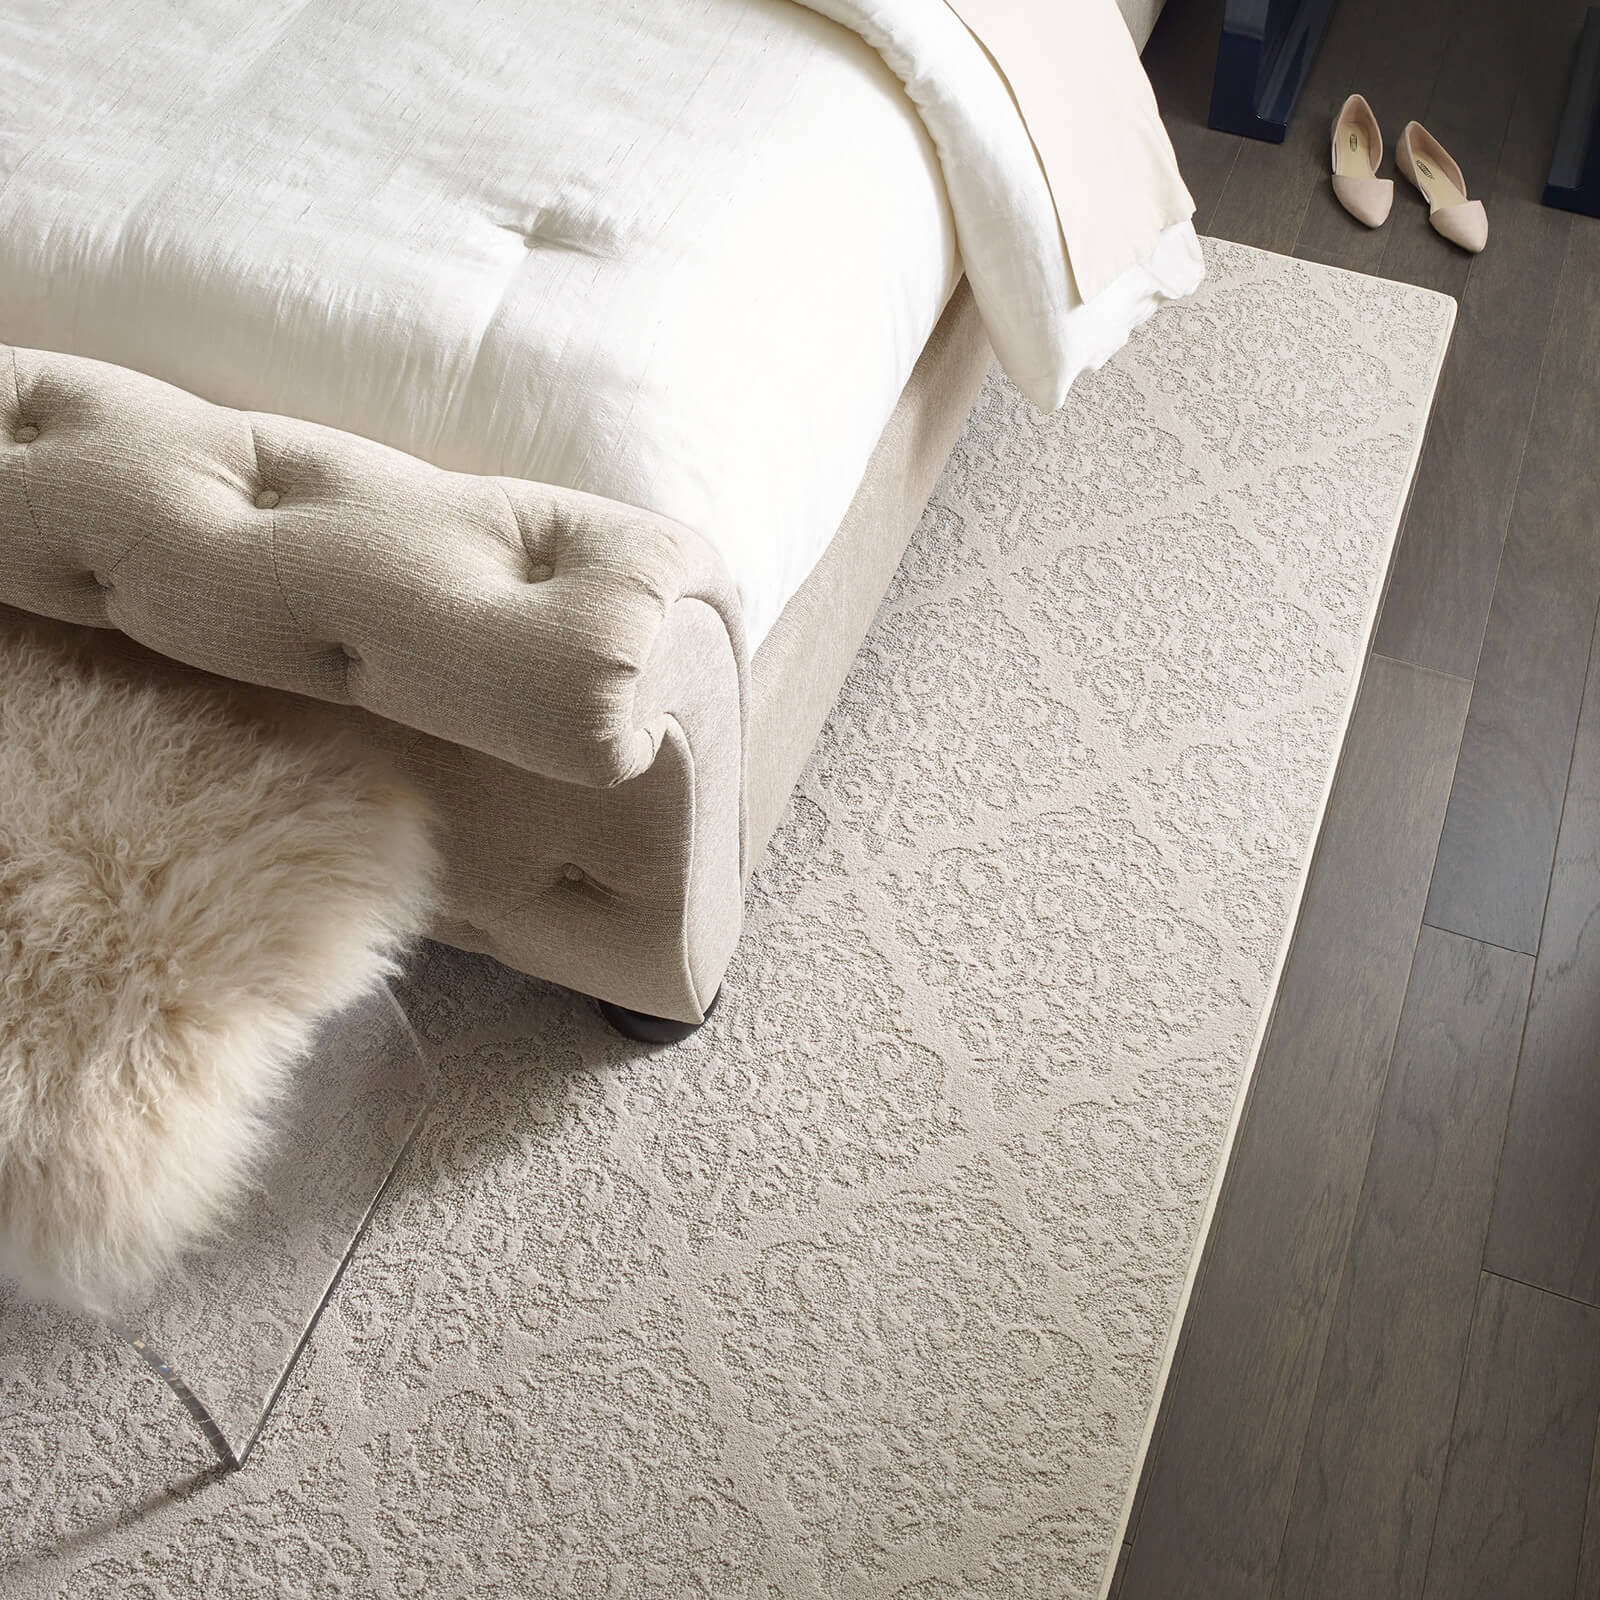 Northington Smooth Greystone Chateau Fare Urban Glamour Bedroom Rug Living Room | Home Lumber & Supply